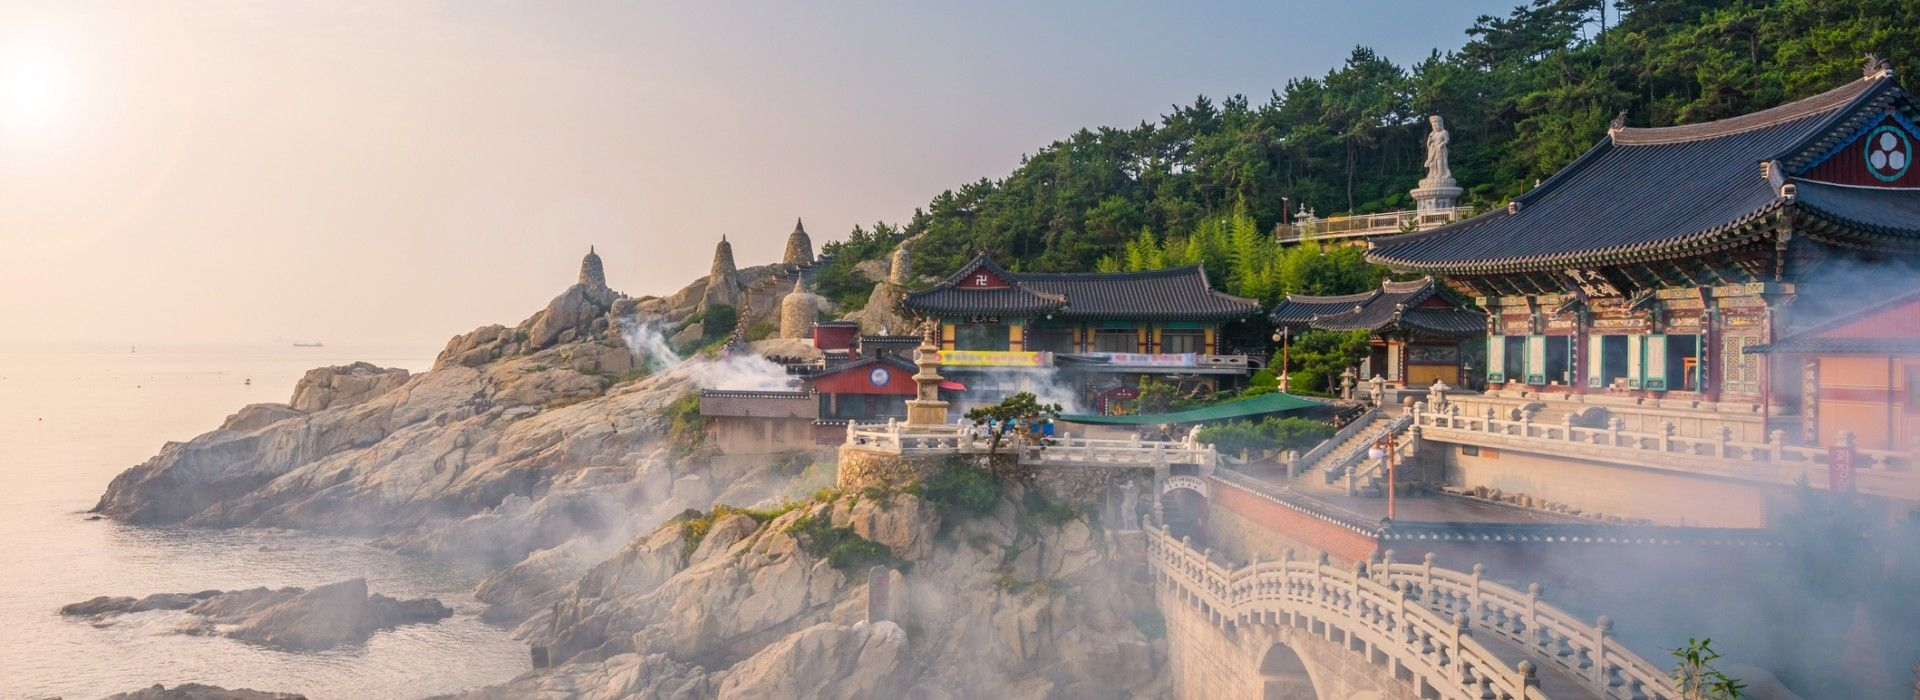 Sightseeing, attractions, culture and history Tours in South Korea